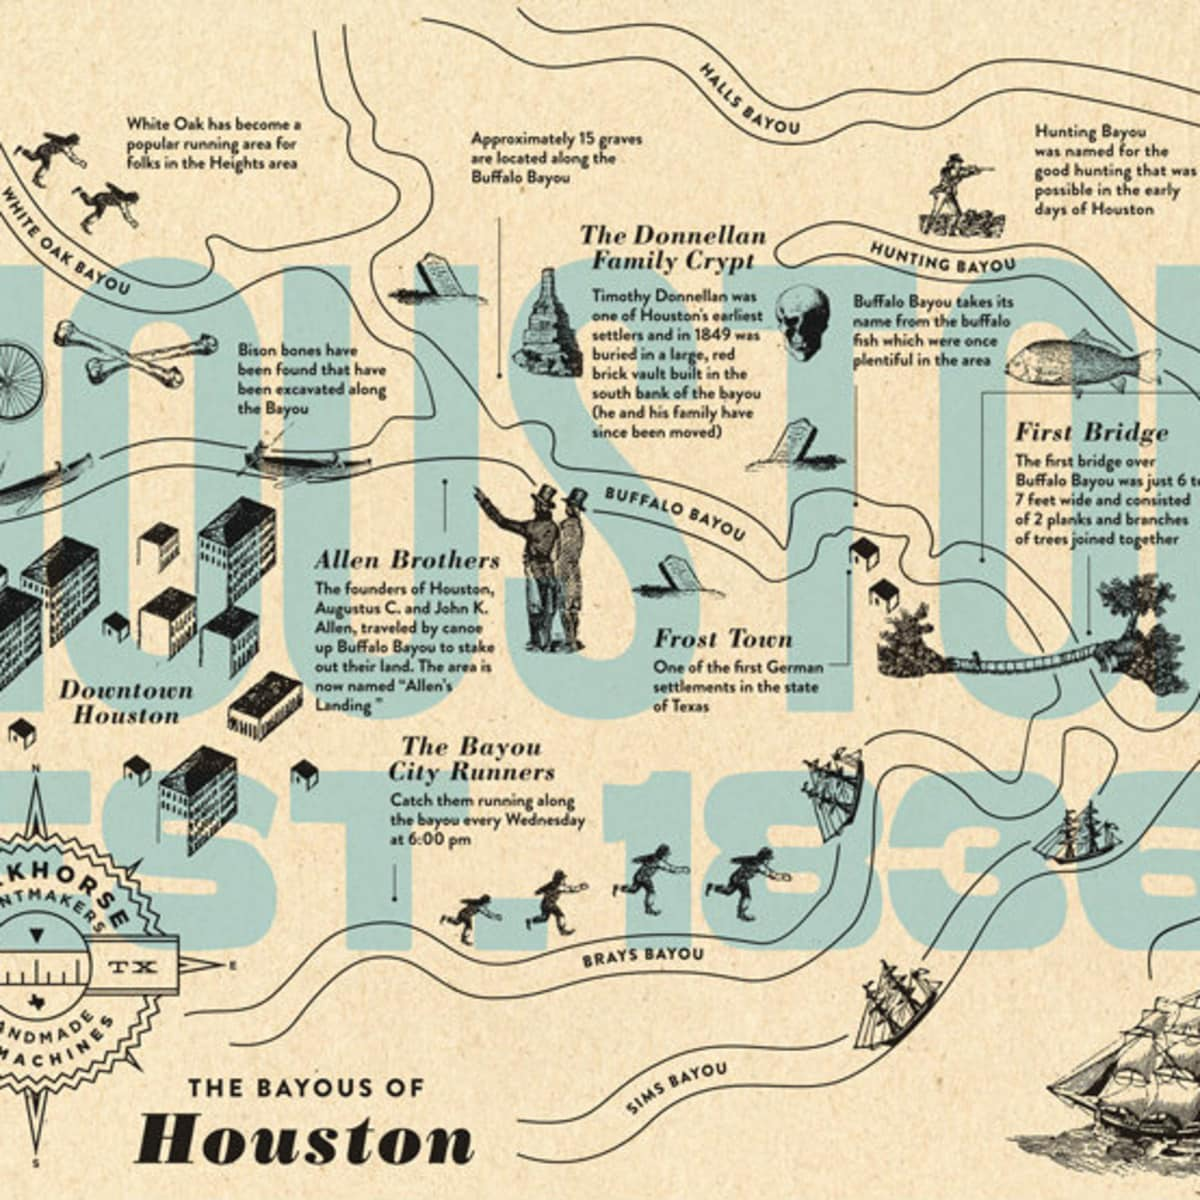 Workhorse Printmakers Bayous of Houston Local series at West Elm